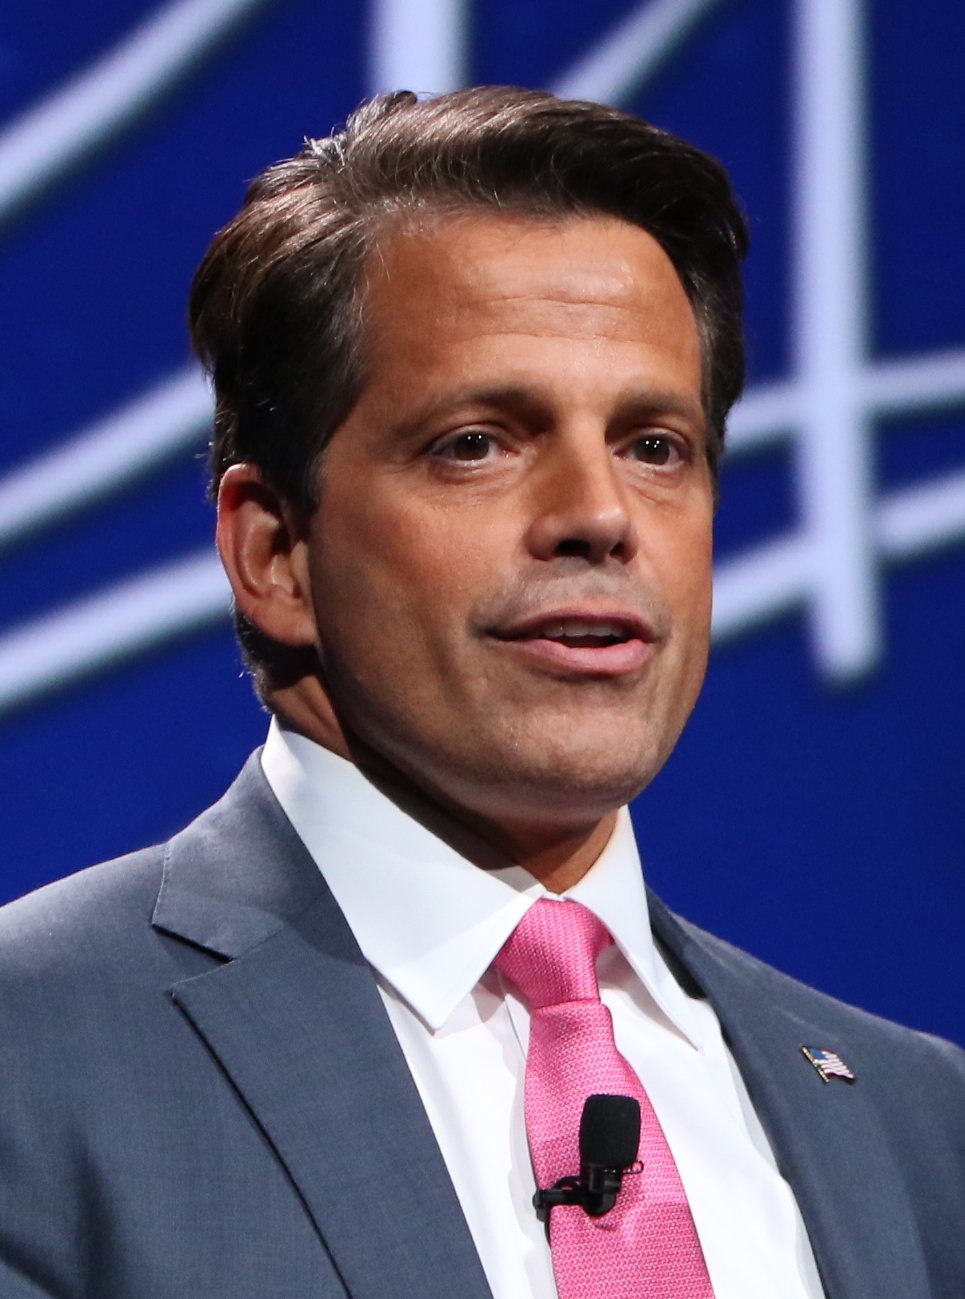 Anthony Scaramucci At Salt Conference 2016 Cropped